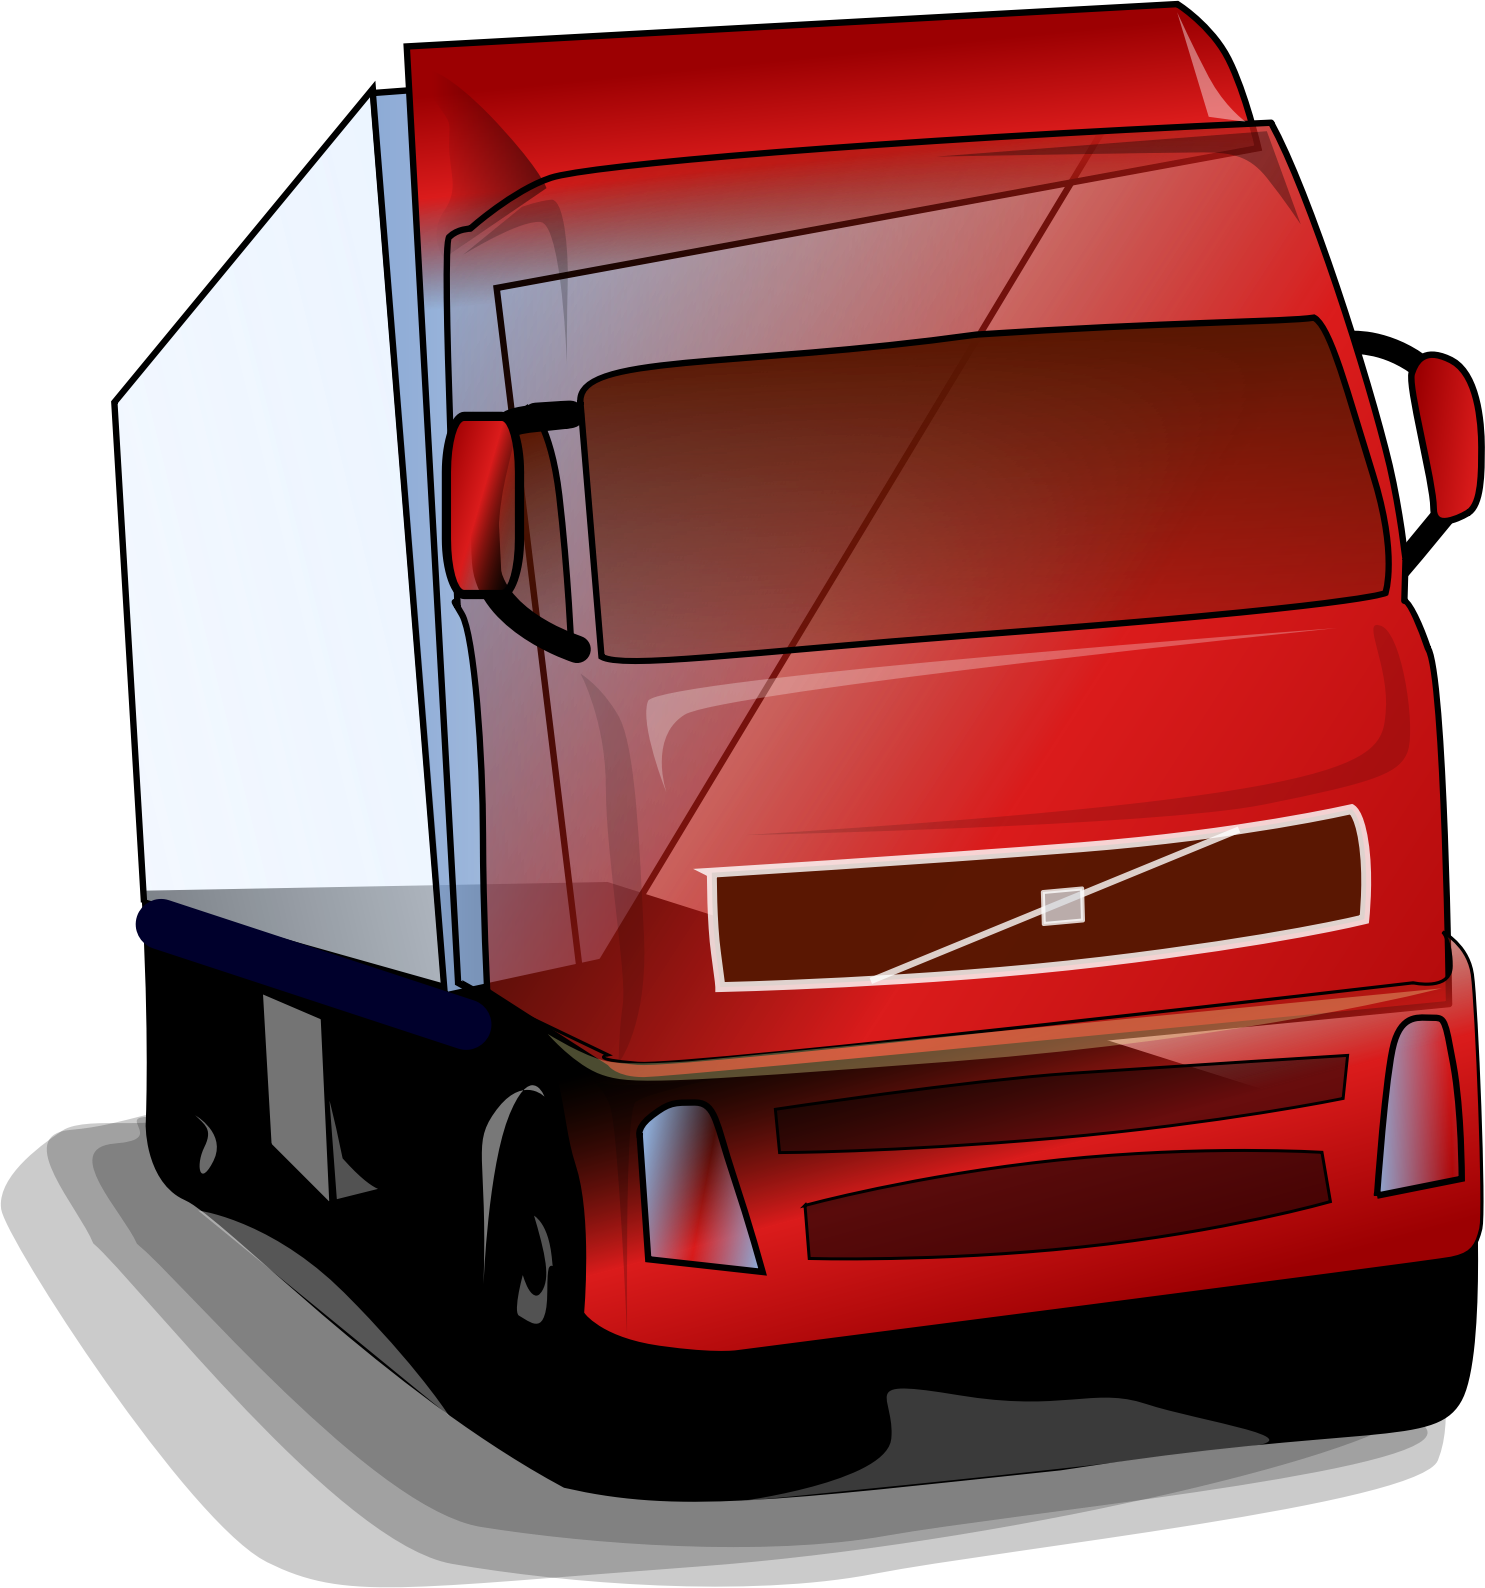 Truck by Jarno